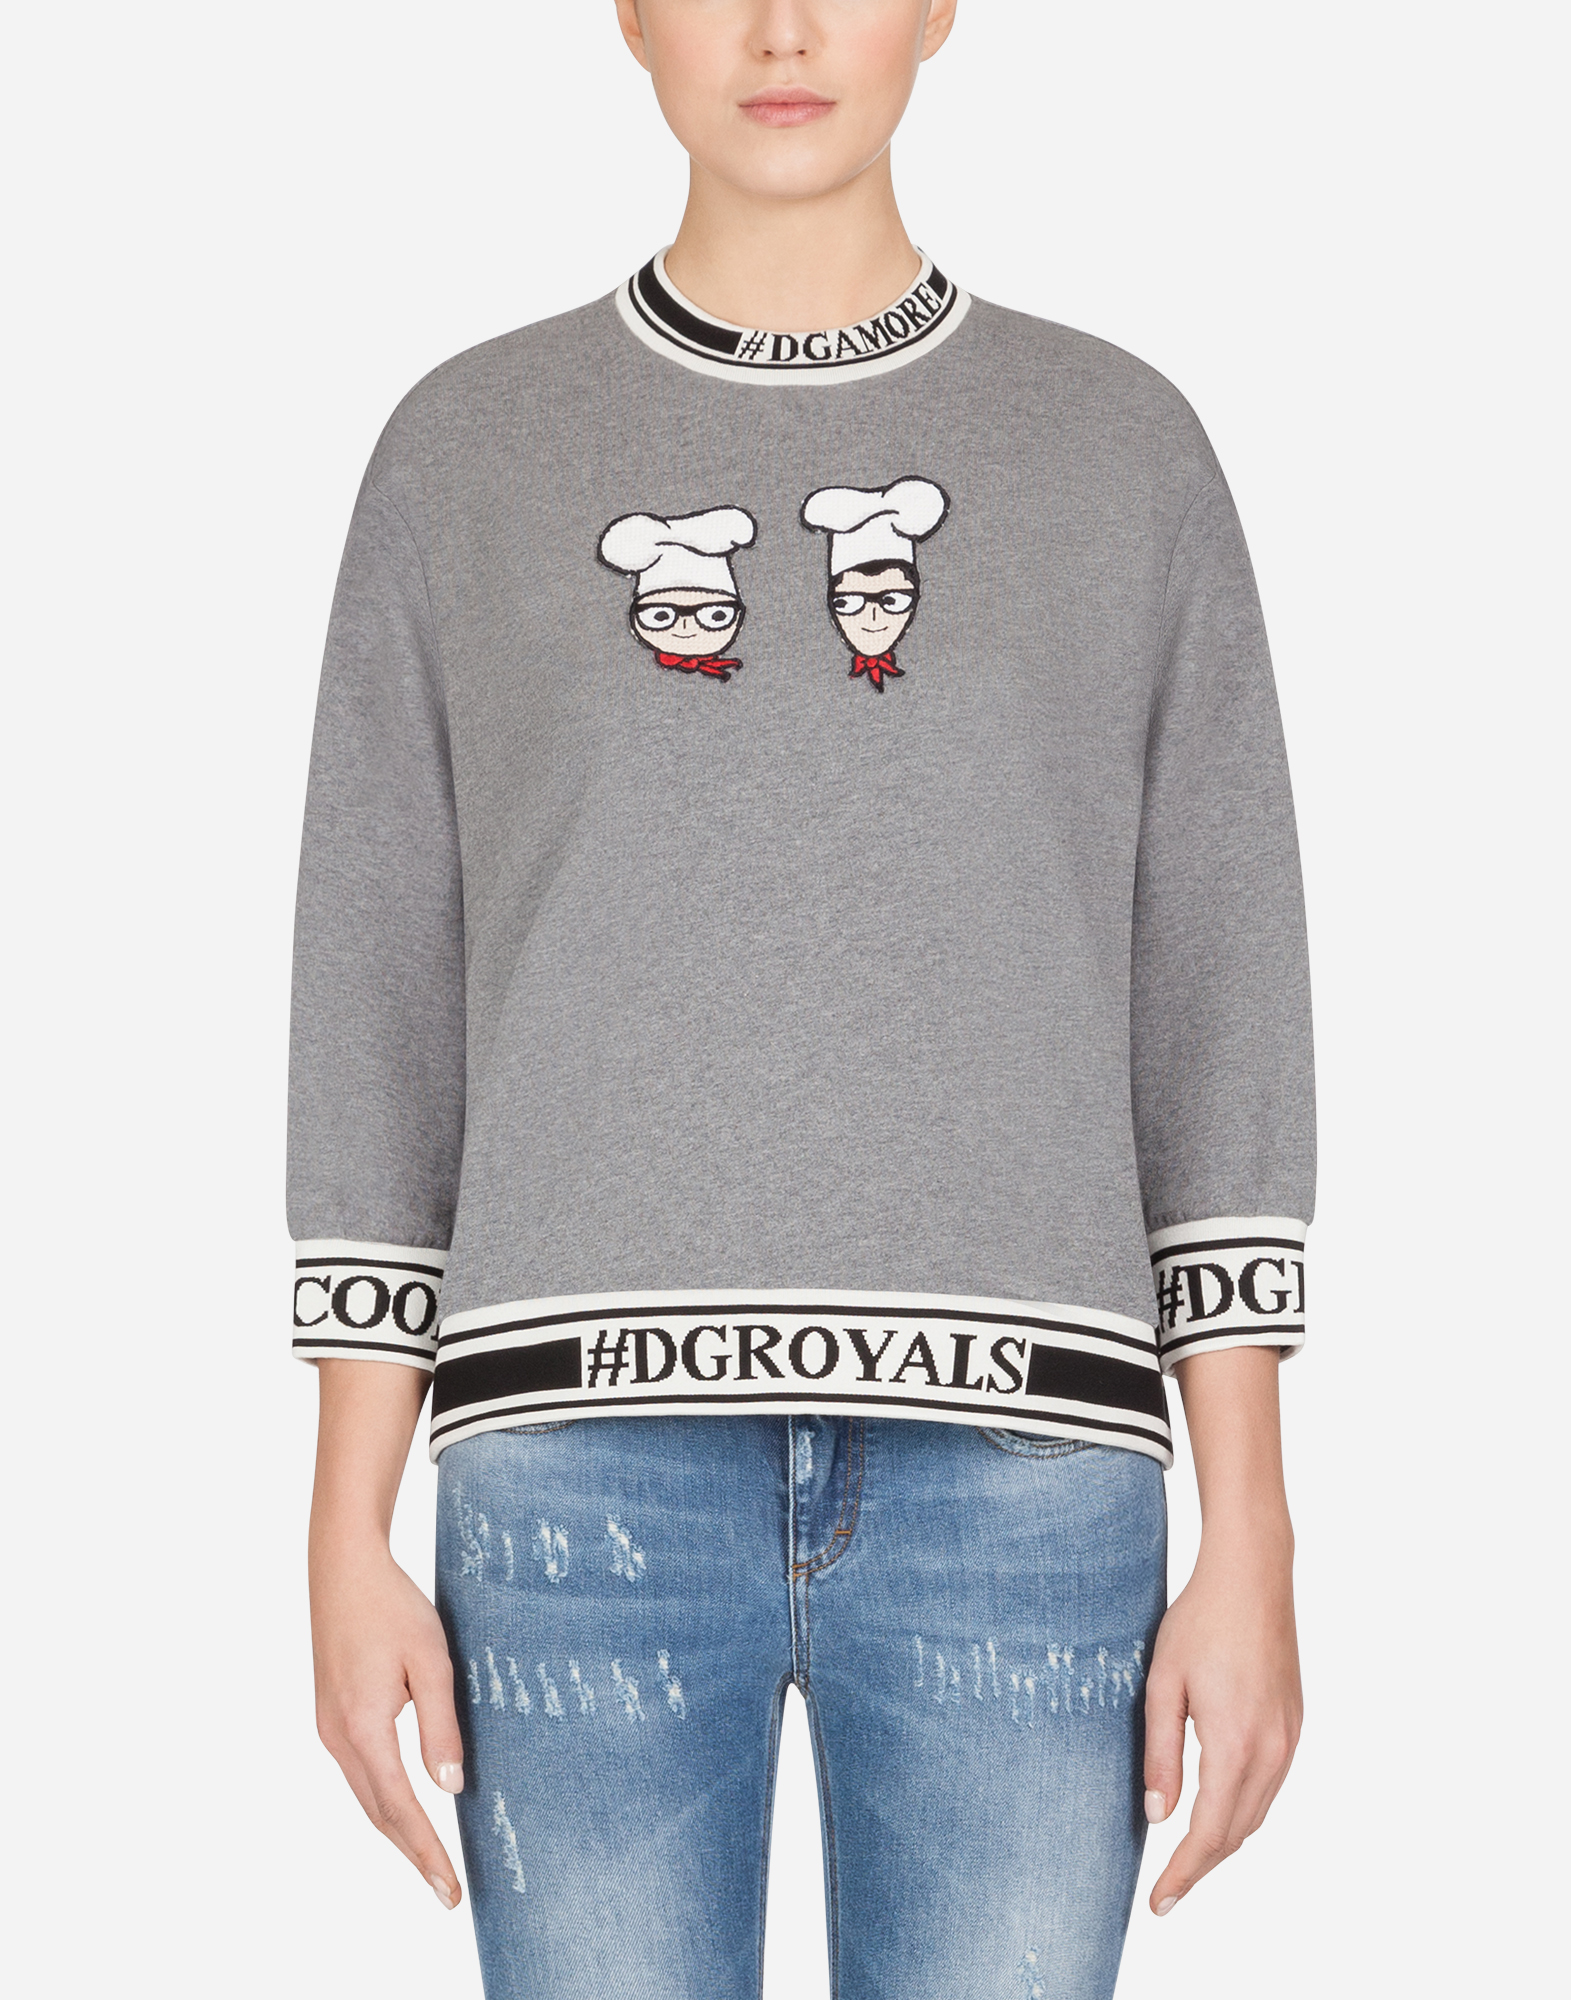 Dolce&Gabbana #DGFAMILY COTTON SWEATSHIRT